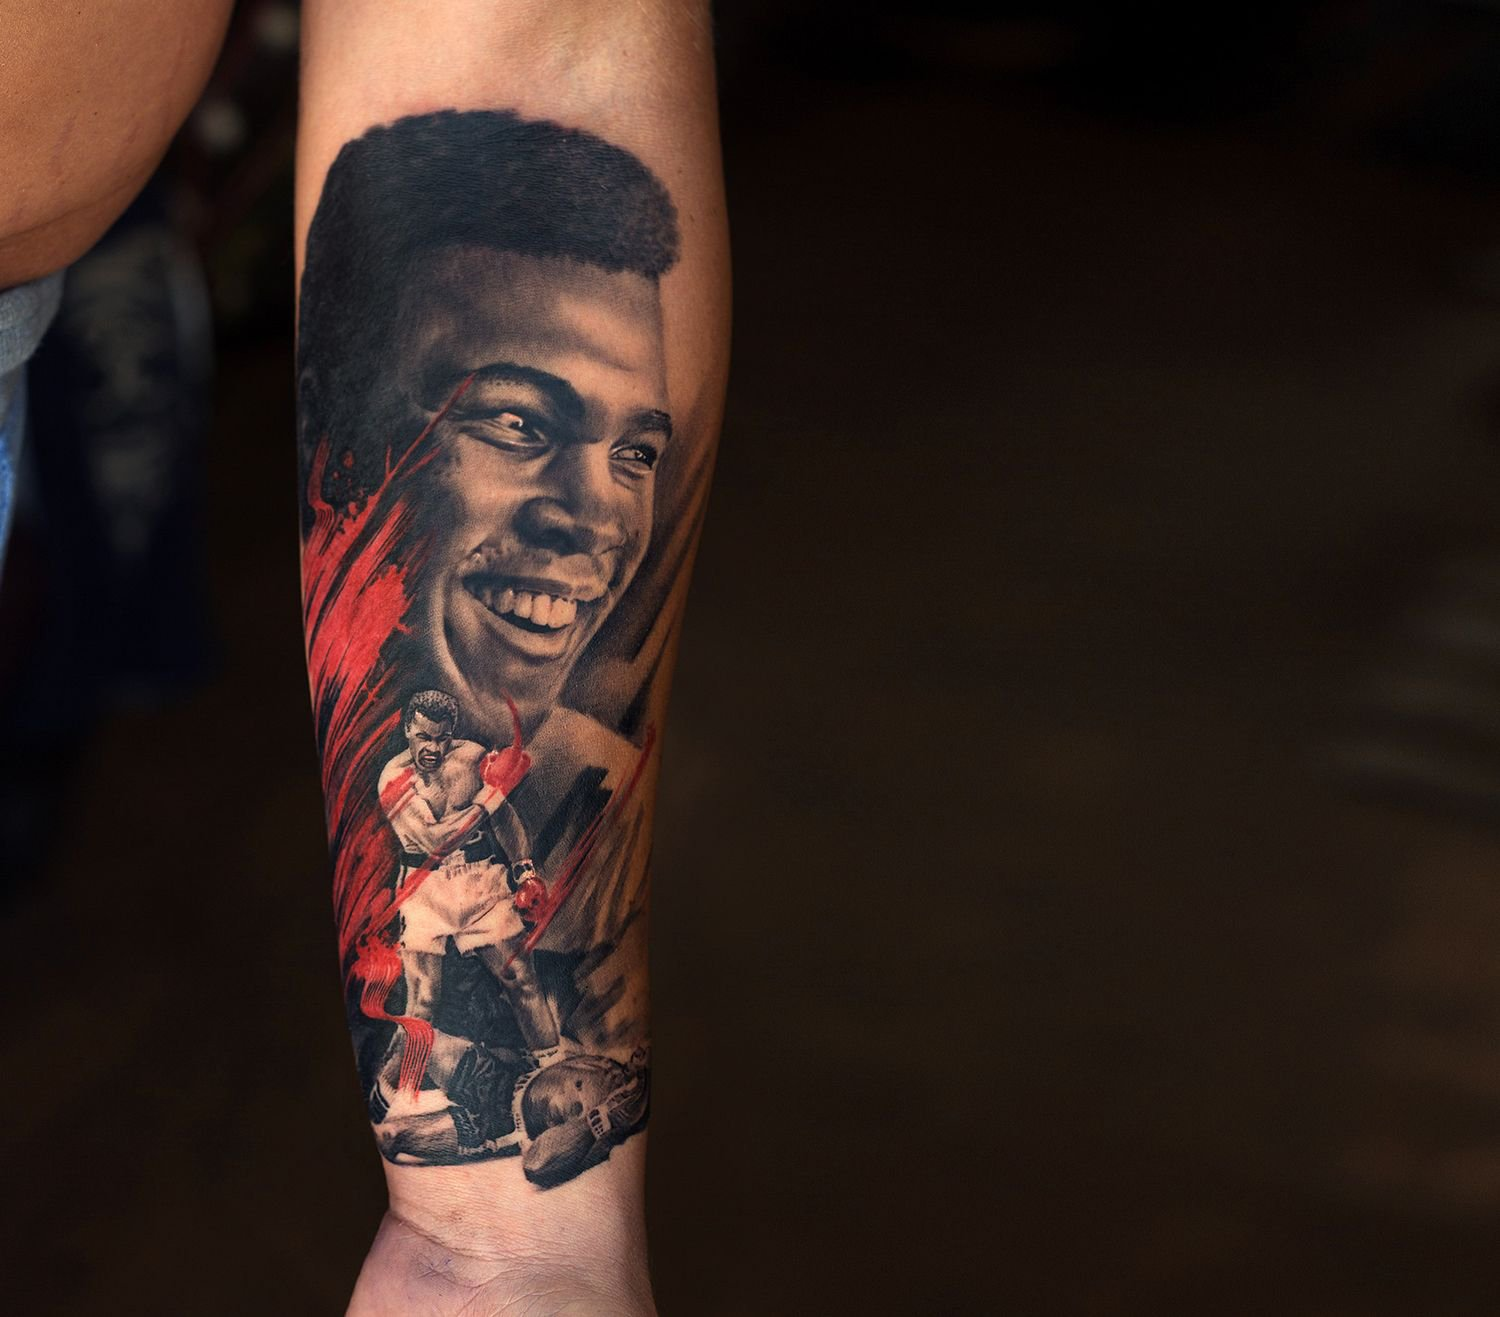 muhammad ali tattoo by sunny, aliens tattoo